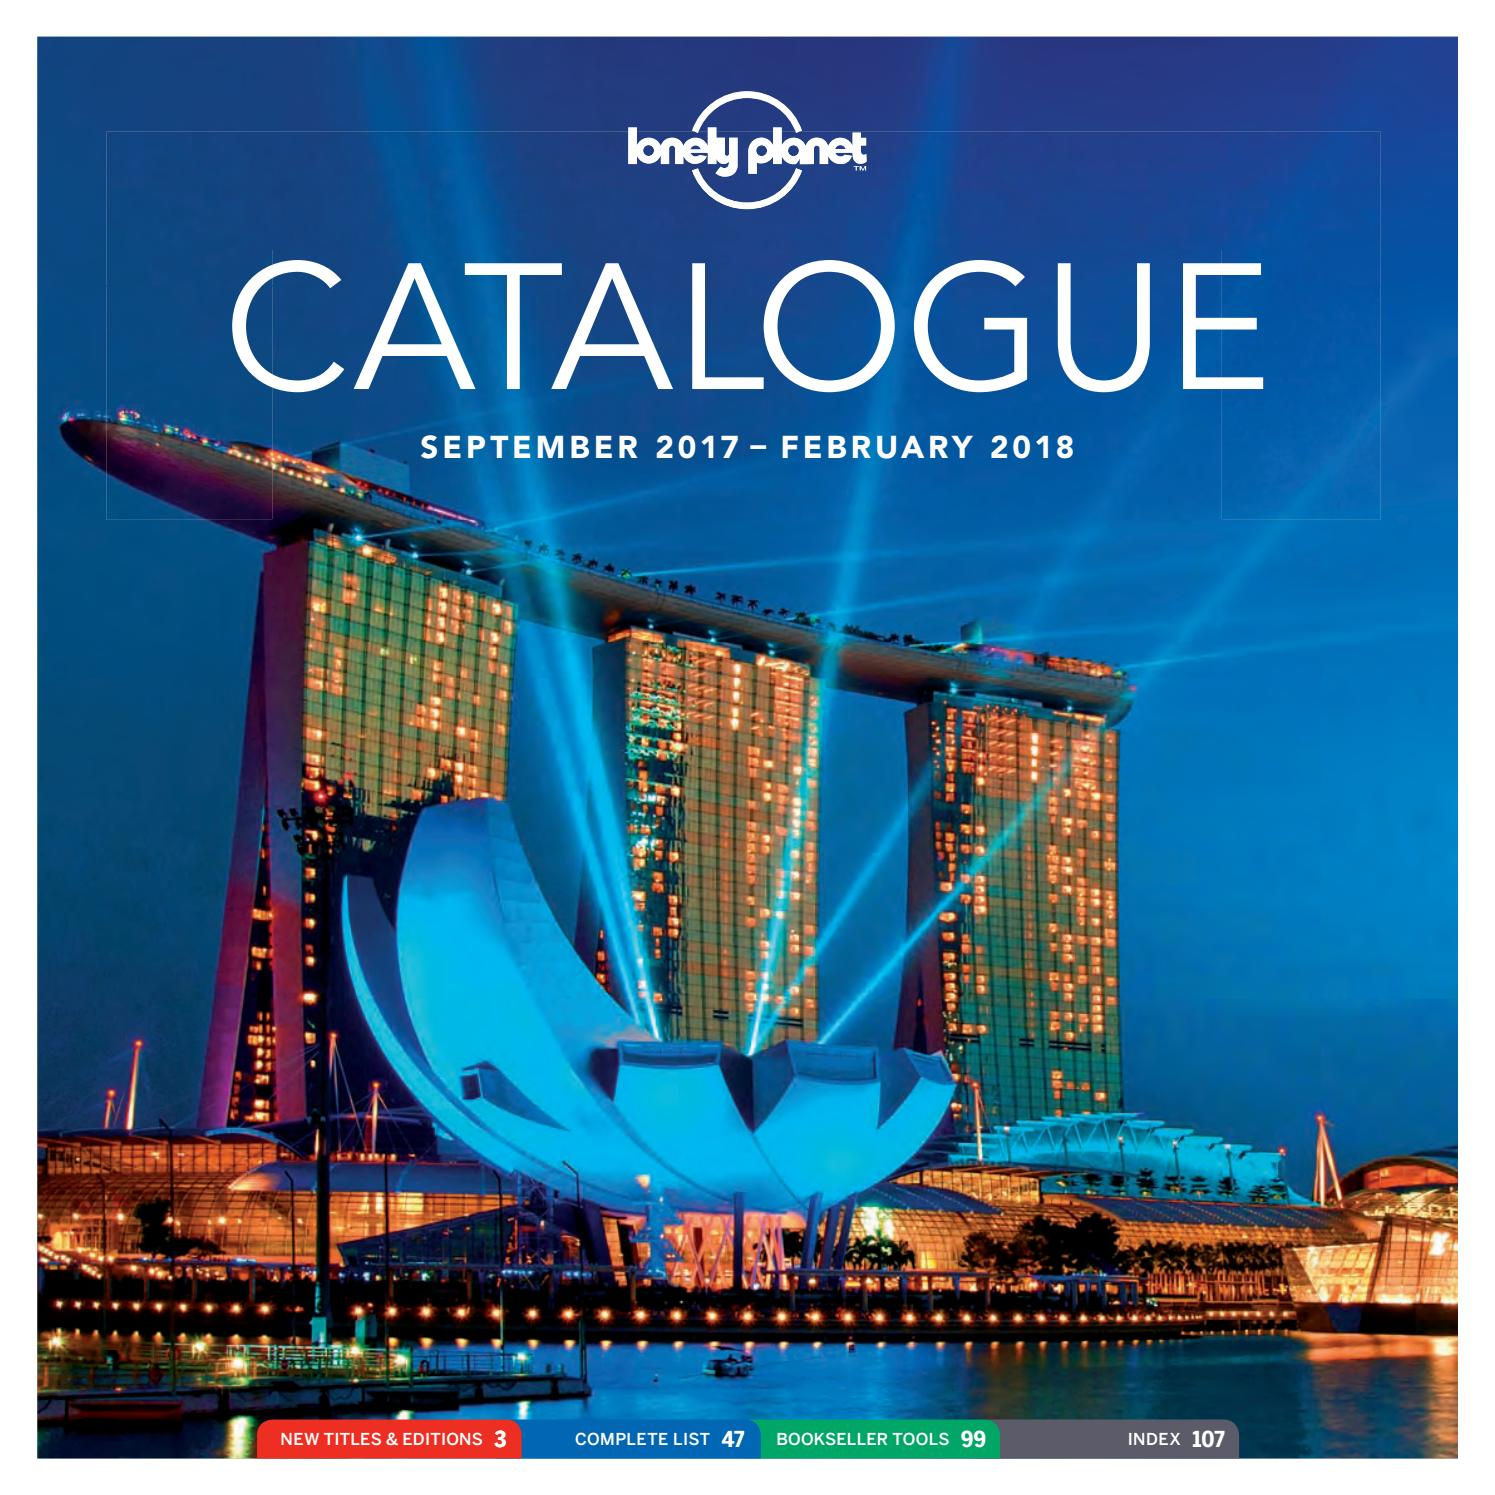 Lonely planet emea catalogue sep17 feb18 by lonely planet marketing lonely planet emea catalogue sep17 feb18 by lonely planet marketing issuu fandeluxe Gallery